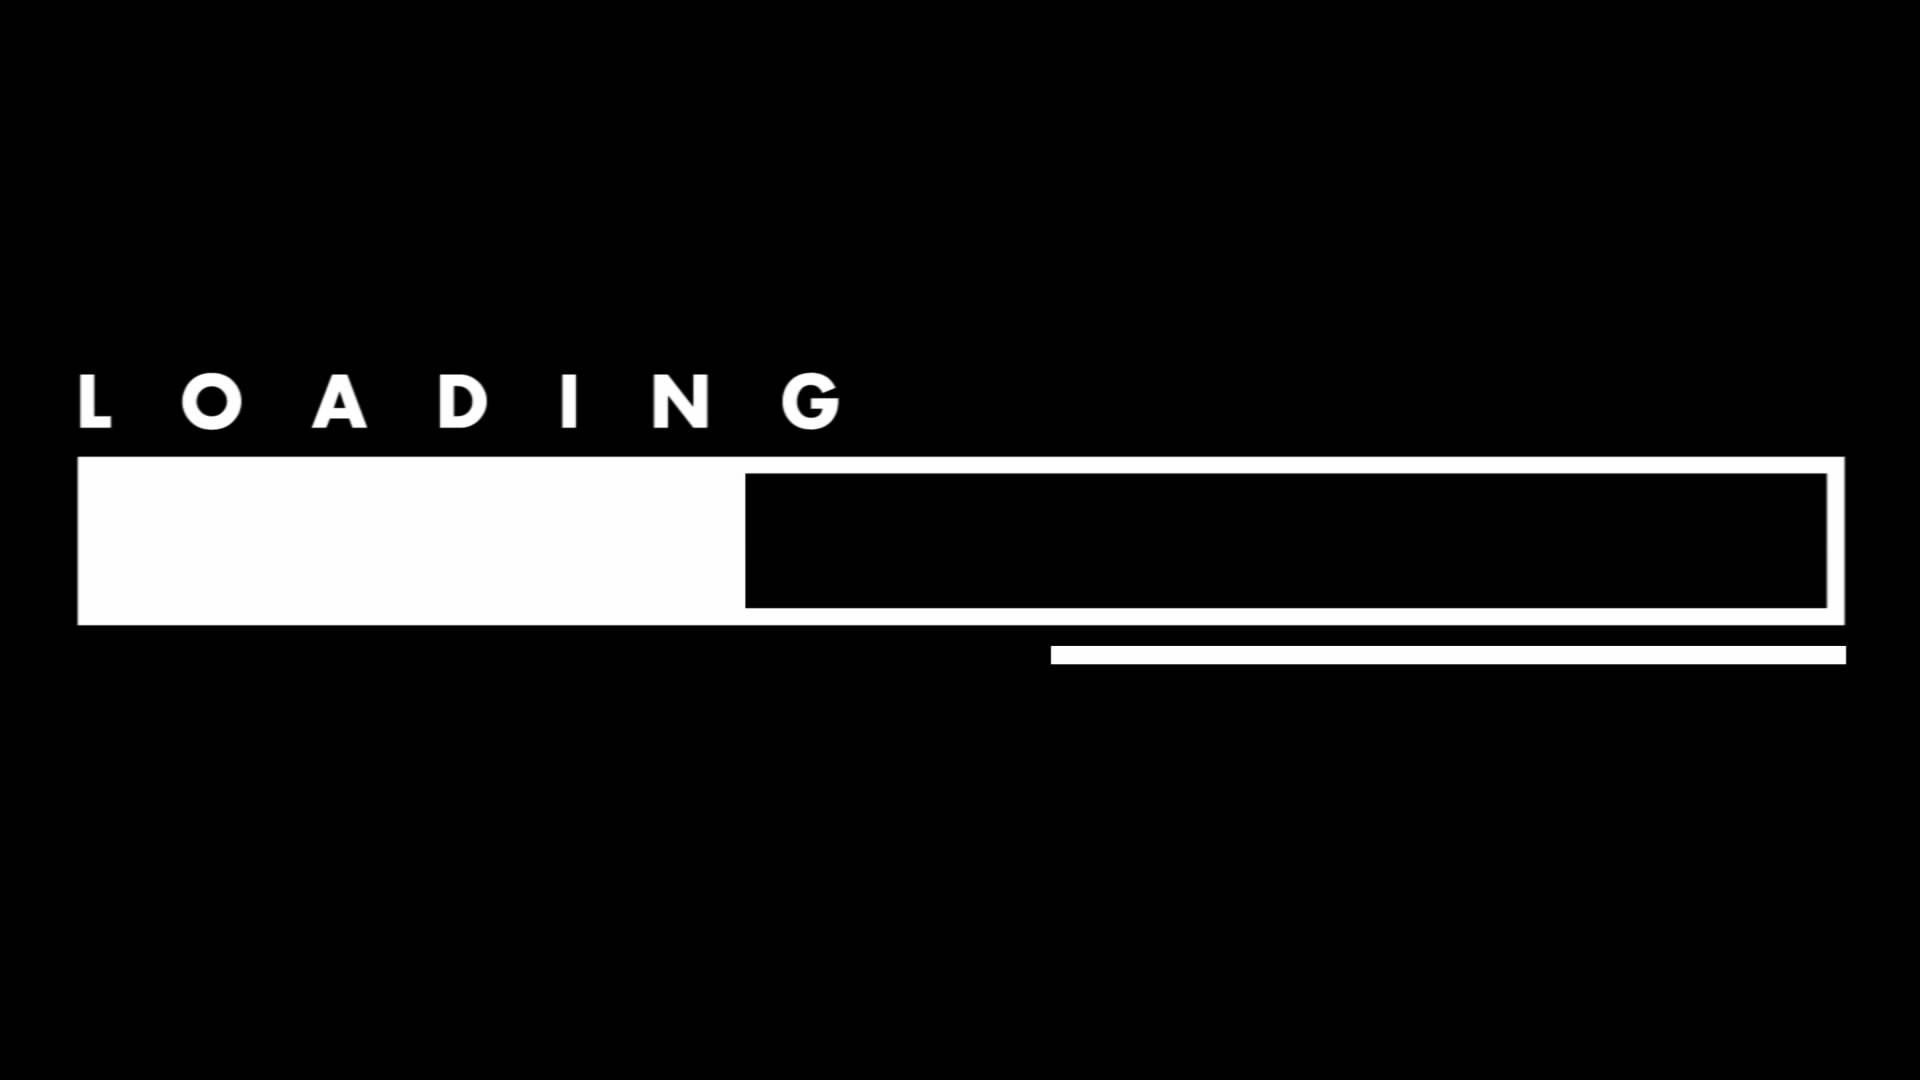 Create a loading scene with a